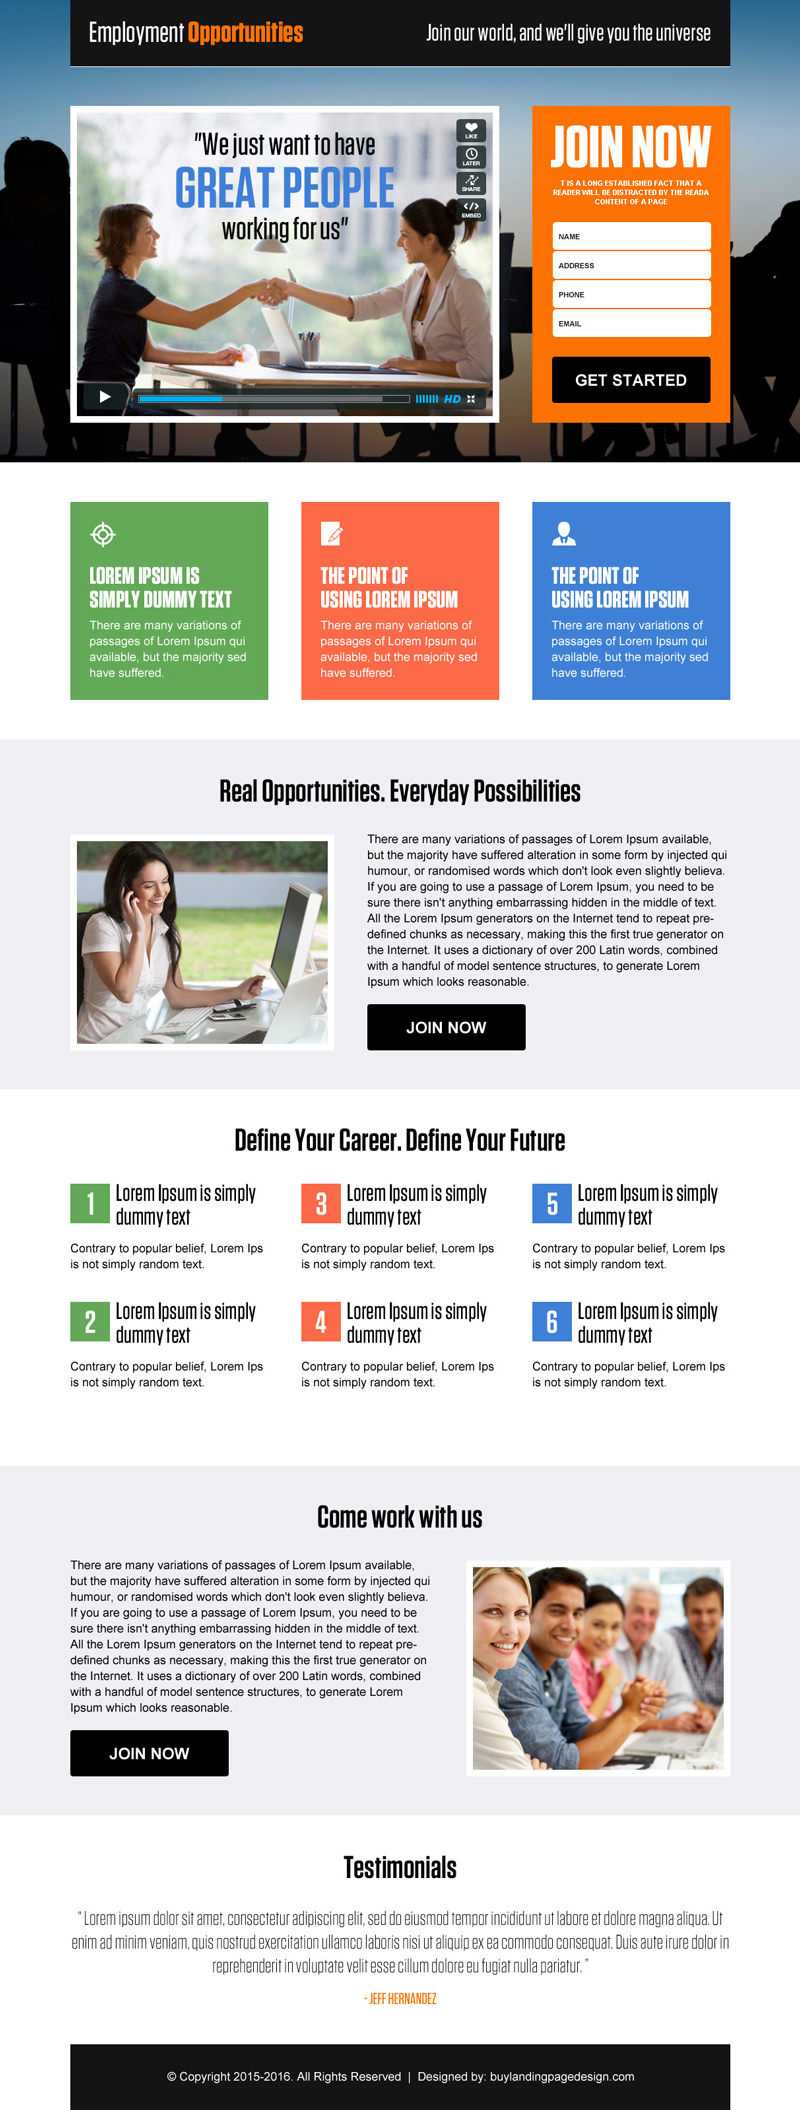 employment-opportunities-video-lead-gen-landing-page-design-template-002